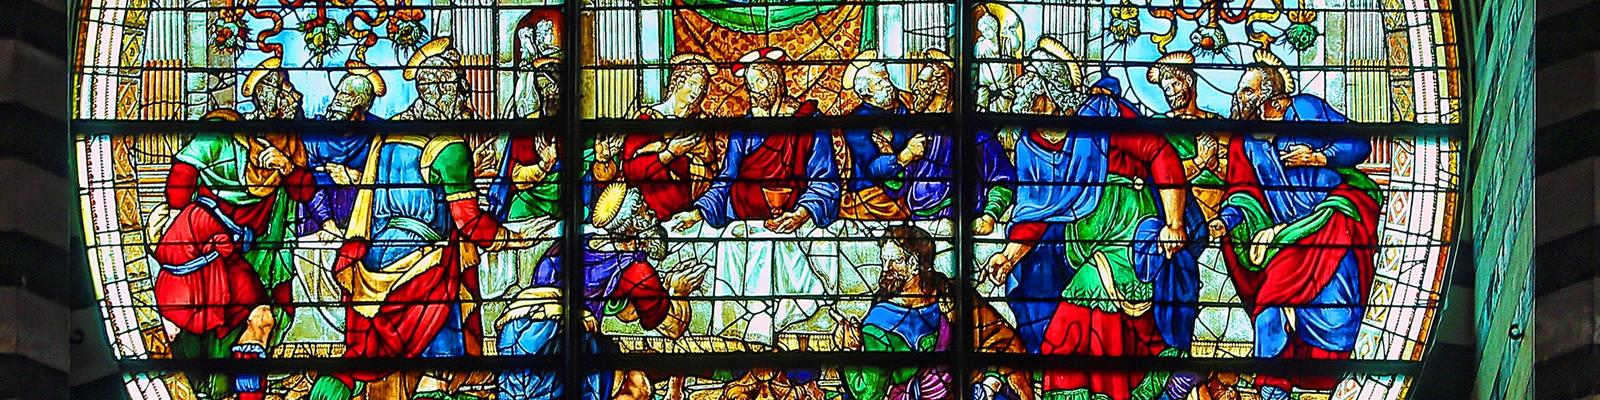 Stained glass window showing religious scene